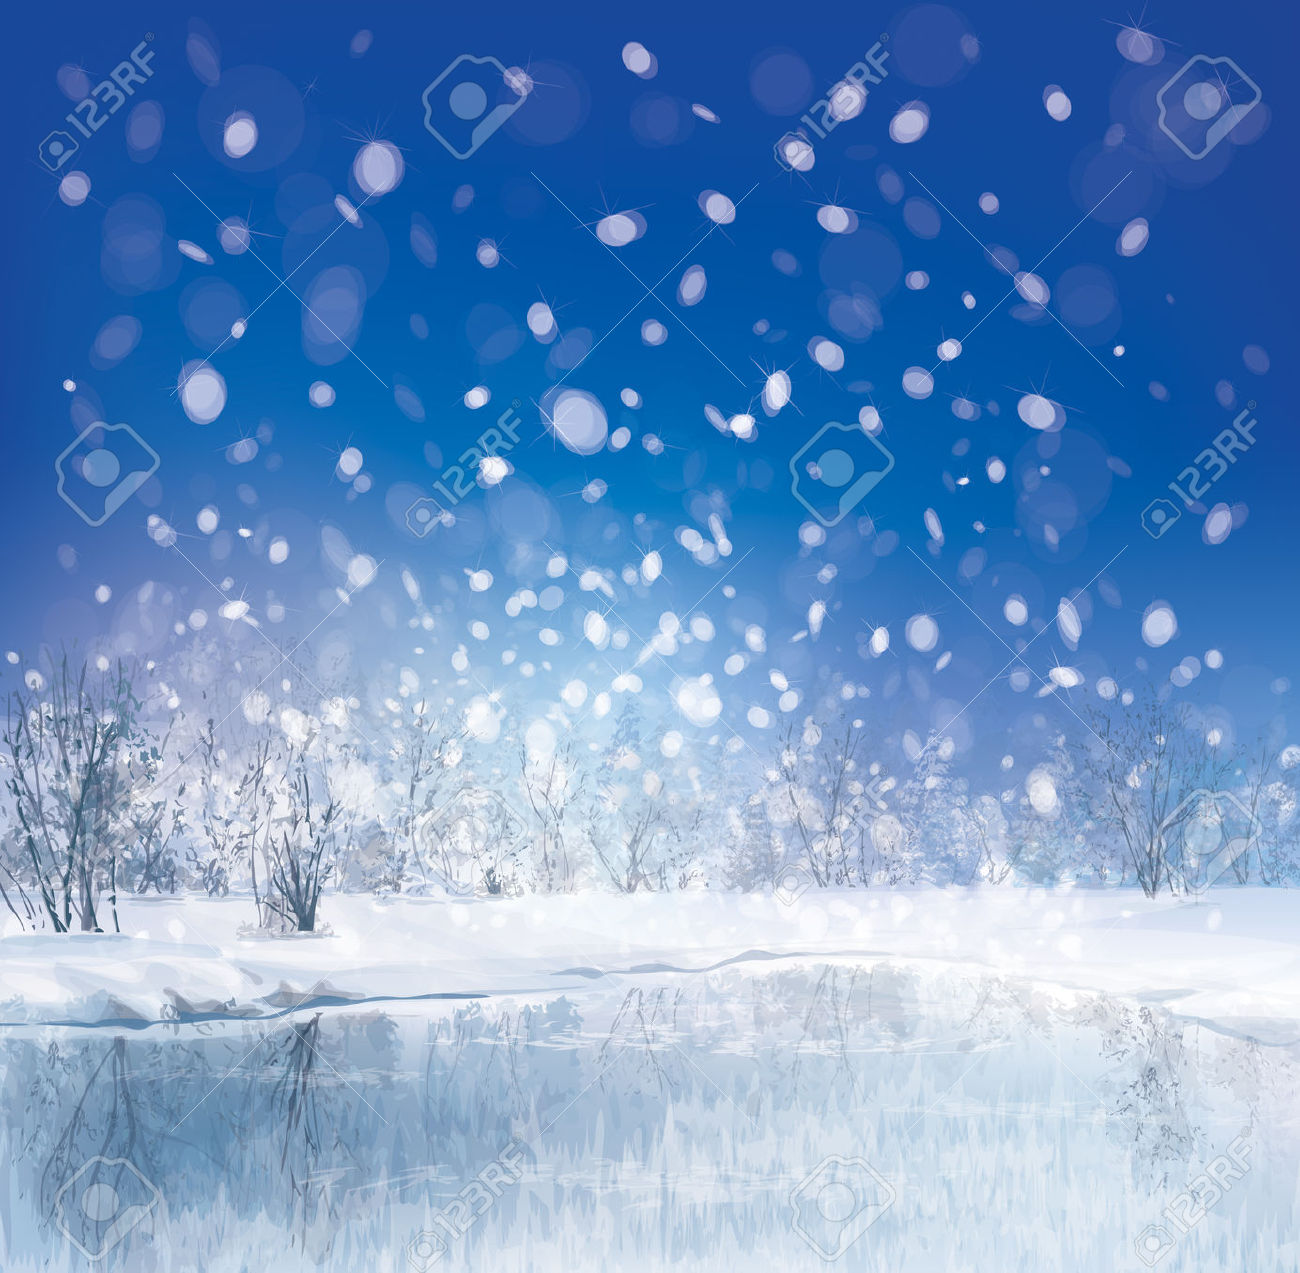 Free Winter Scene Cliparts, Download Free Clip Art, Free.